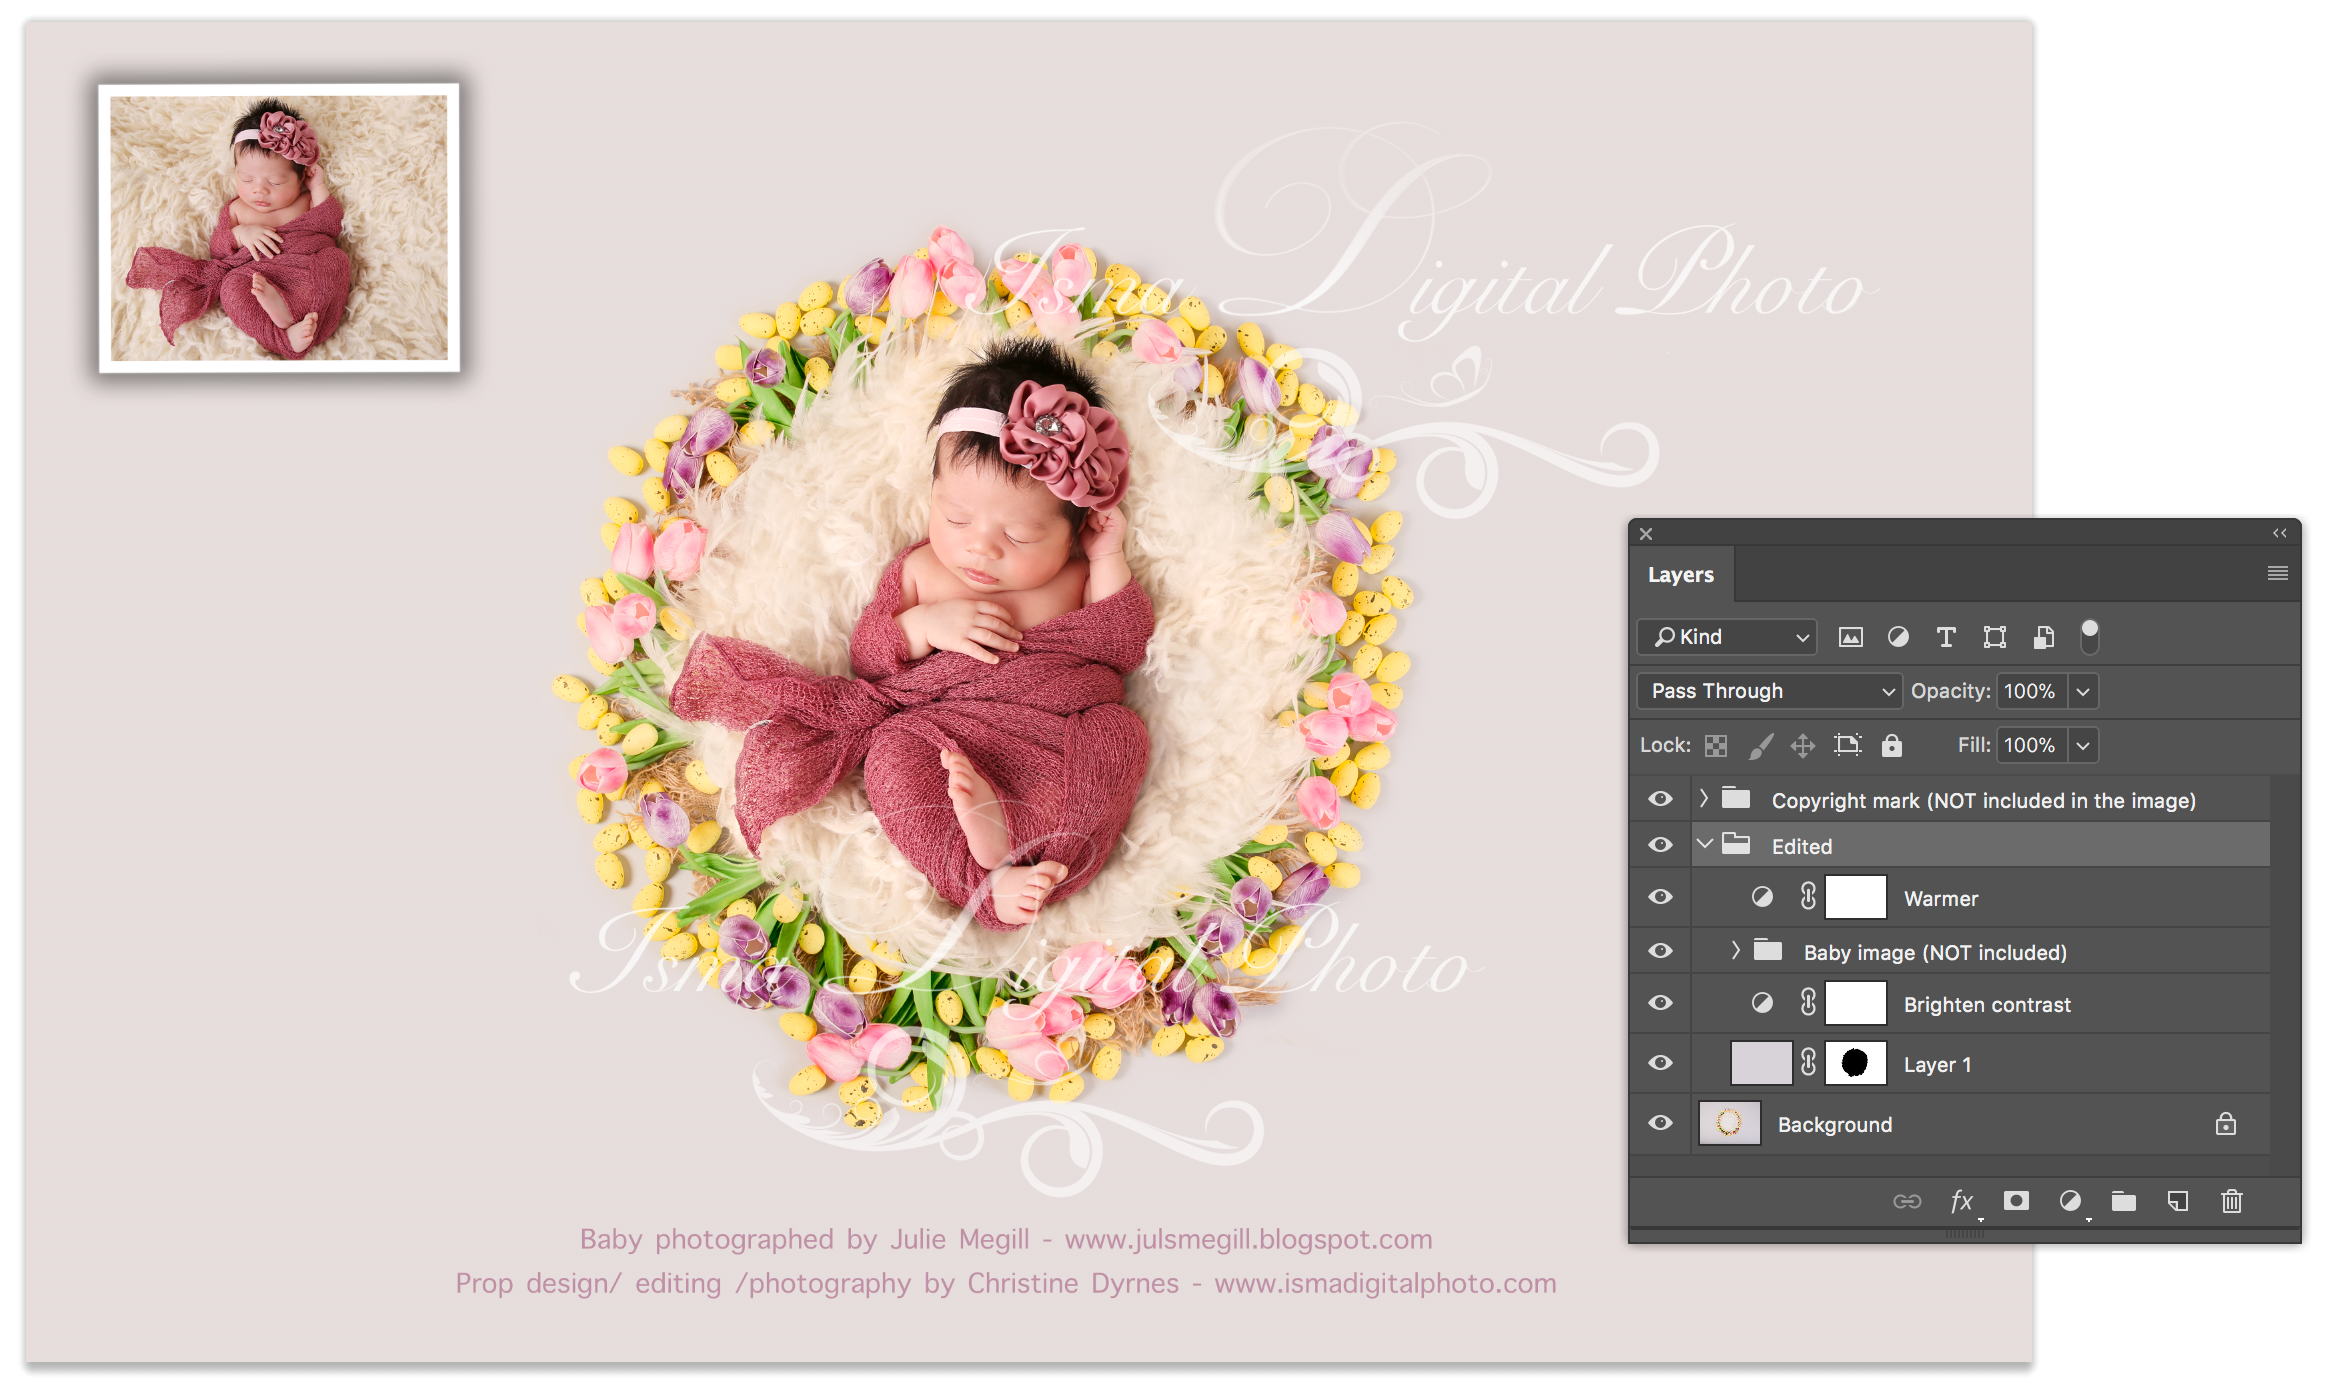 Digital Photography Backdrop /Props for Newborn Photography - High resolution digital backdrop - One JPG and one PSD file with layers